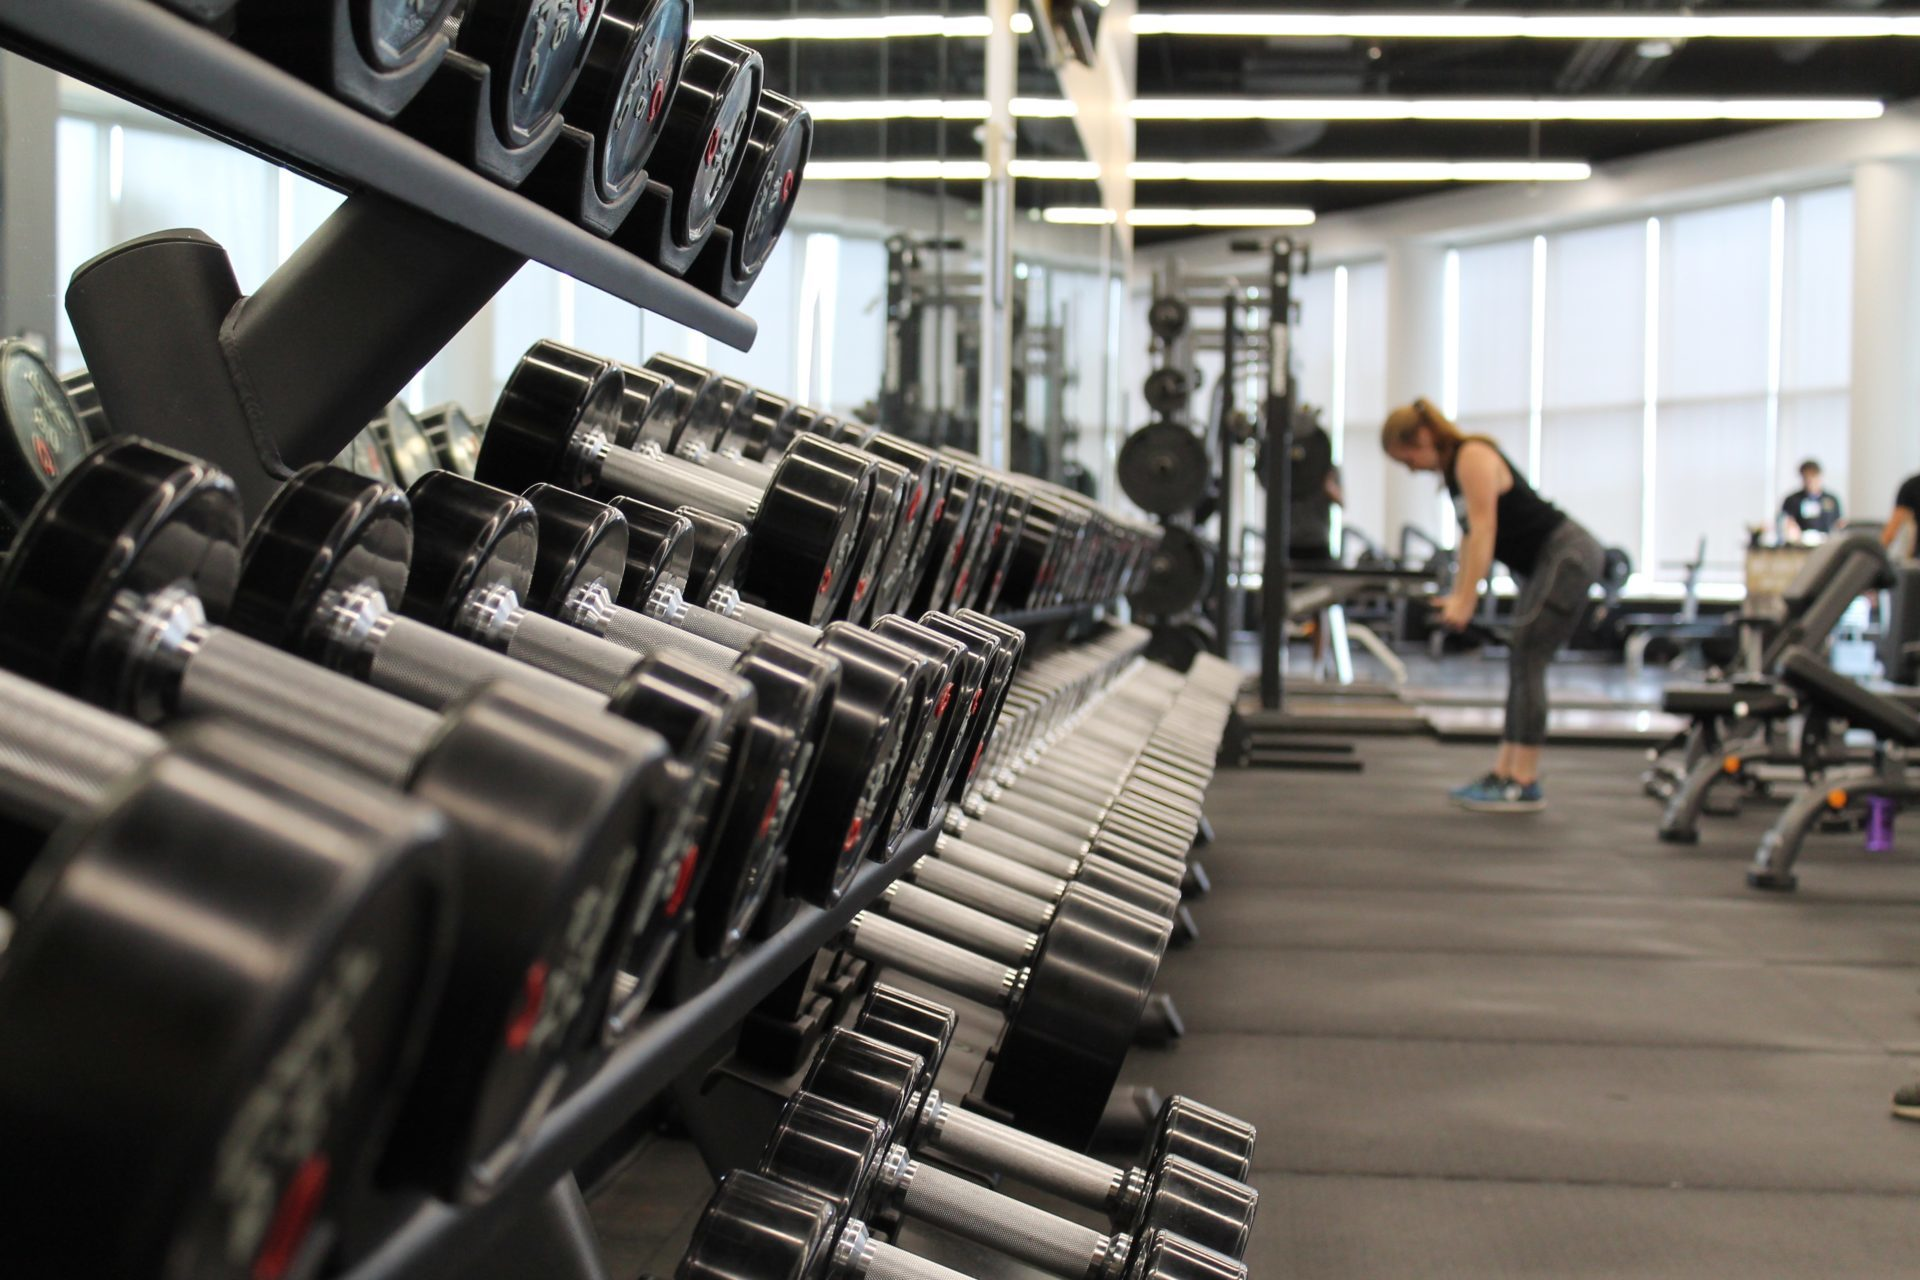 person working out in a gym, dumbbells